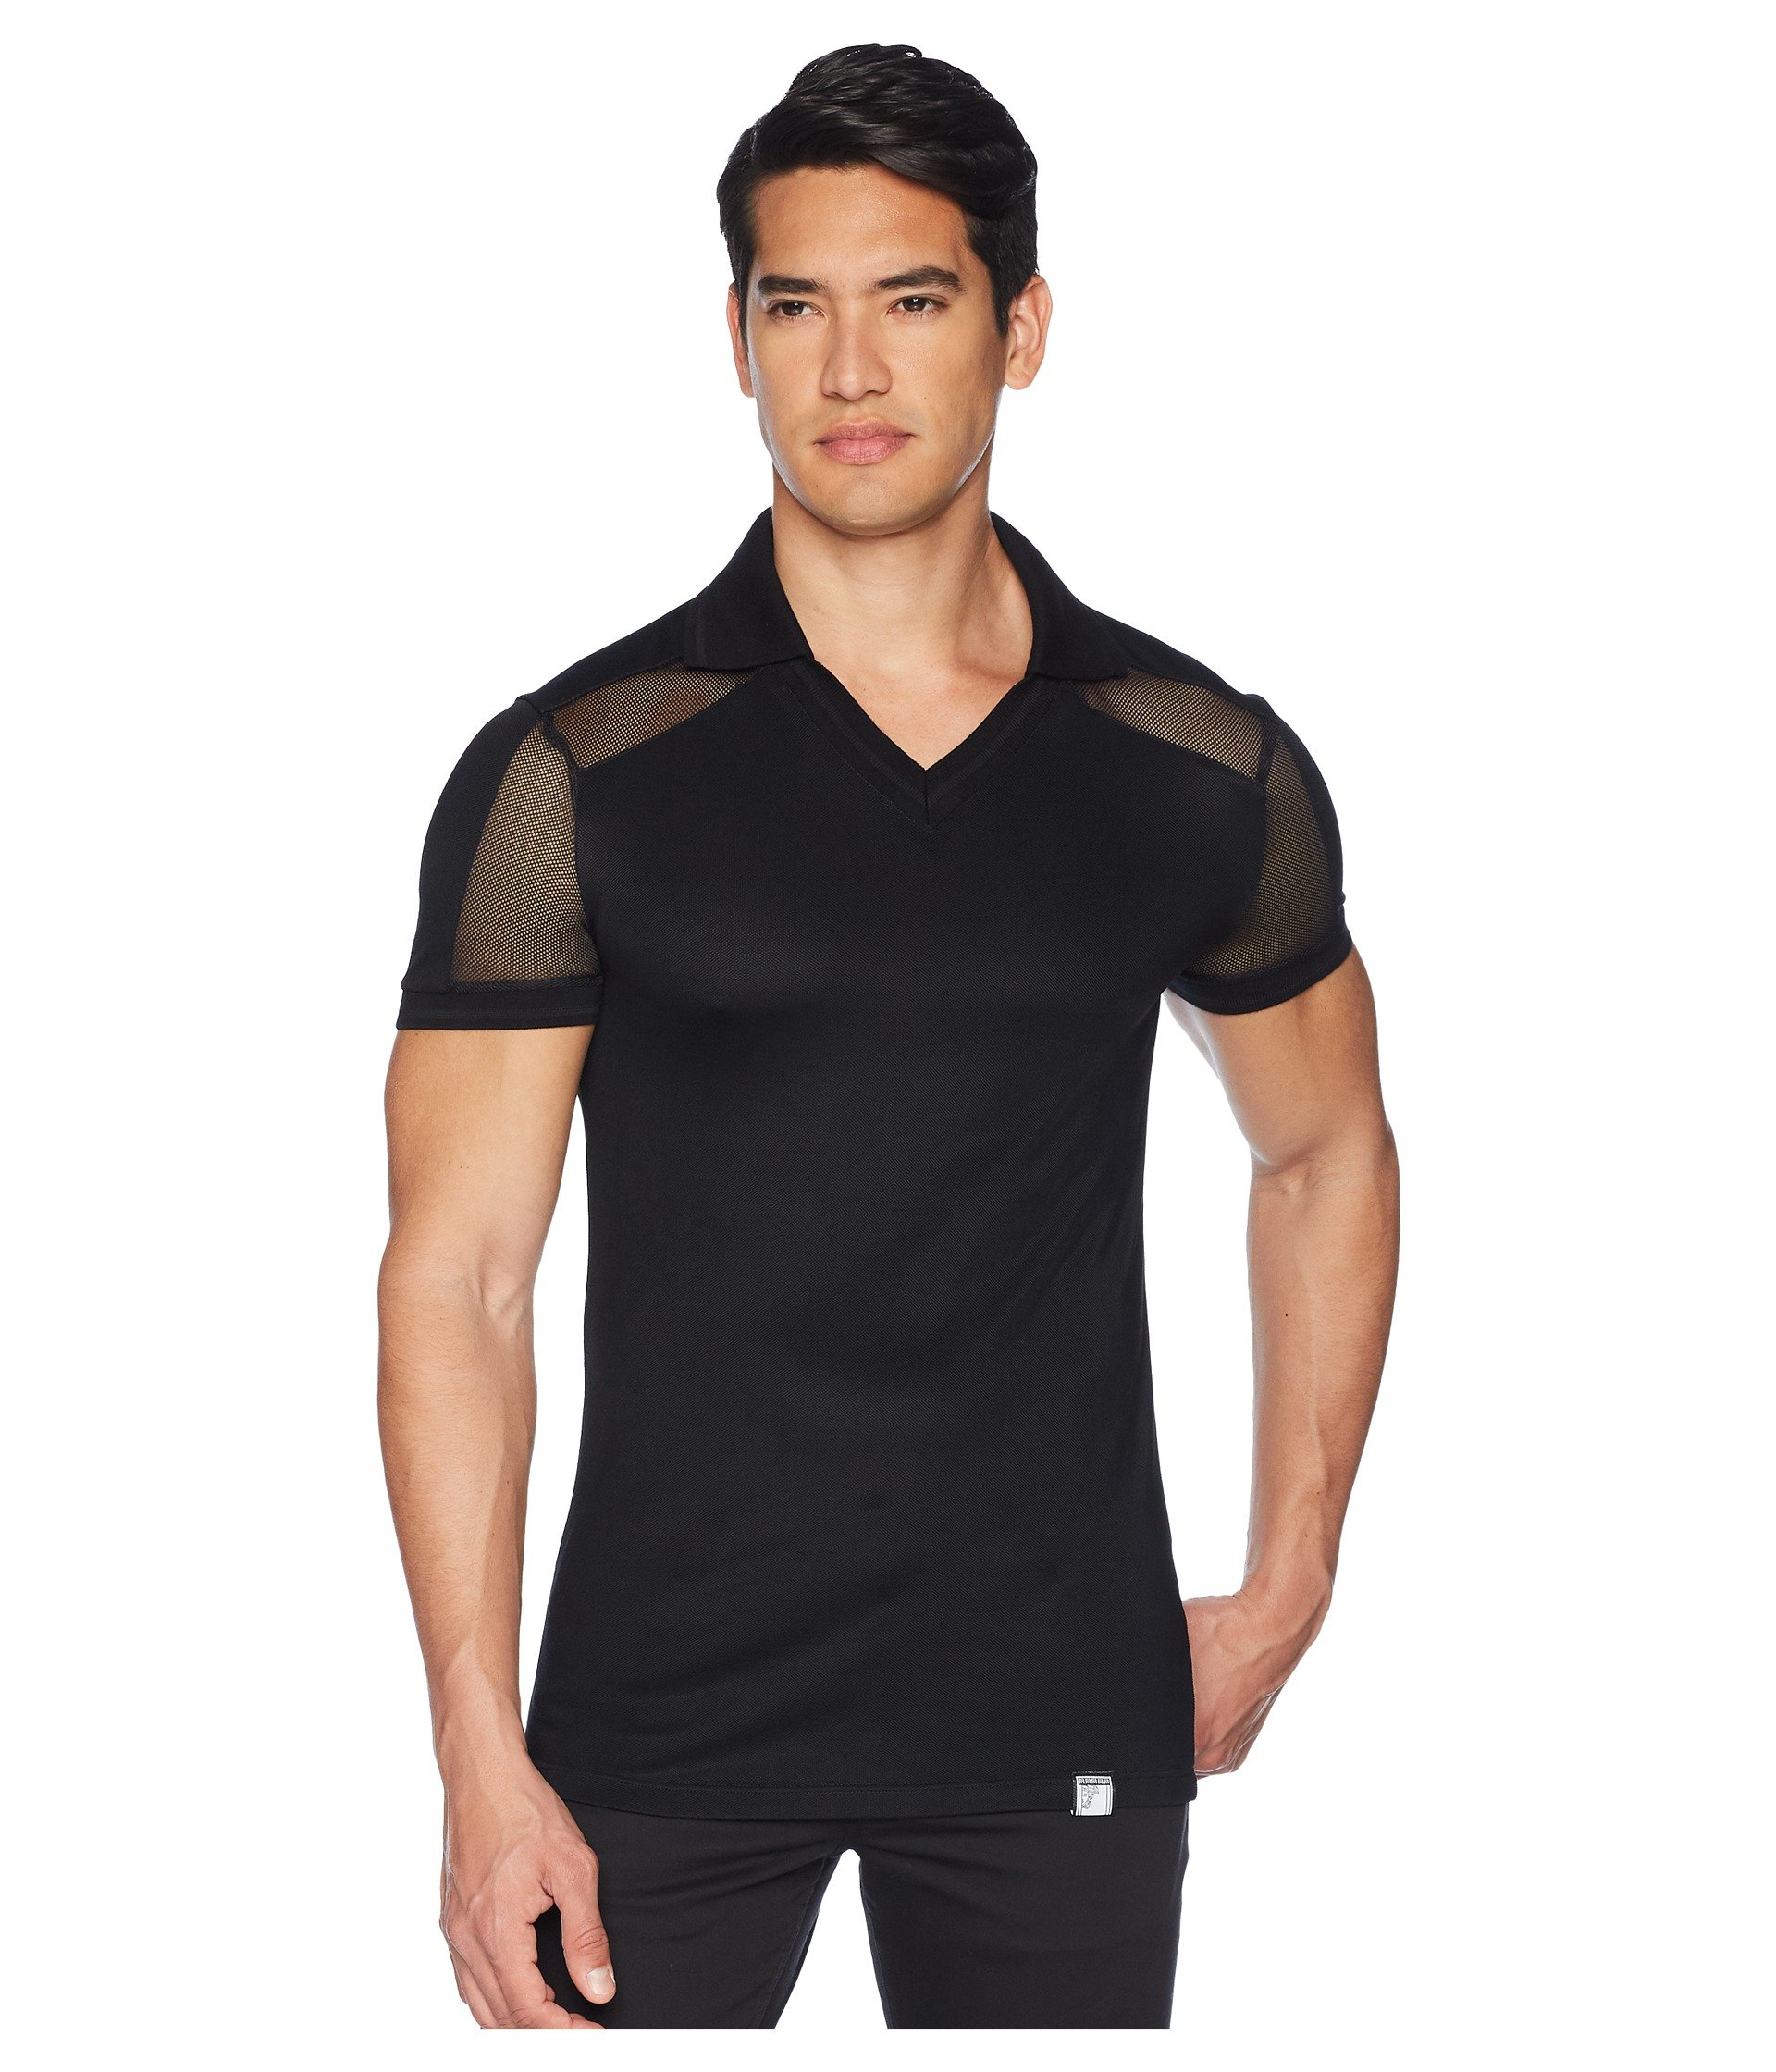 Camiseta Tipo Polo para Hombre Versace Collection Sheer Paneled V-Neck Polo  + Versace en VeoyCompro.net